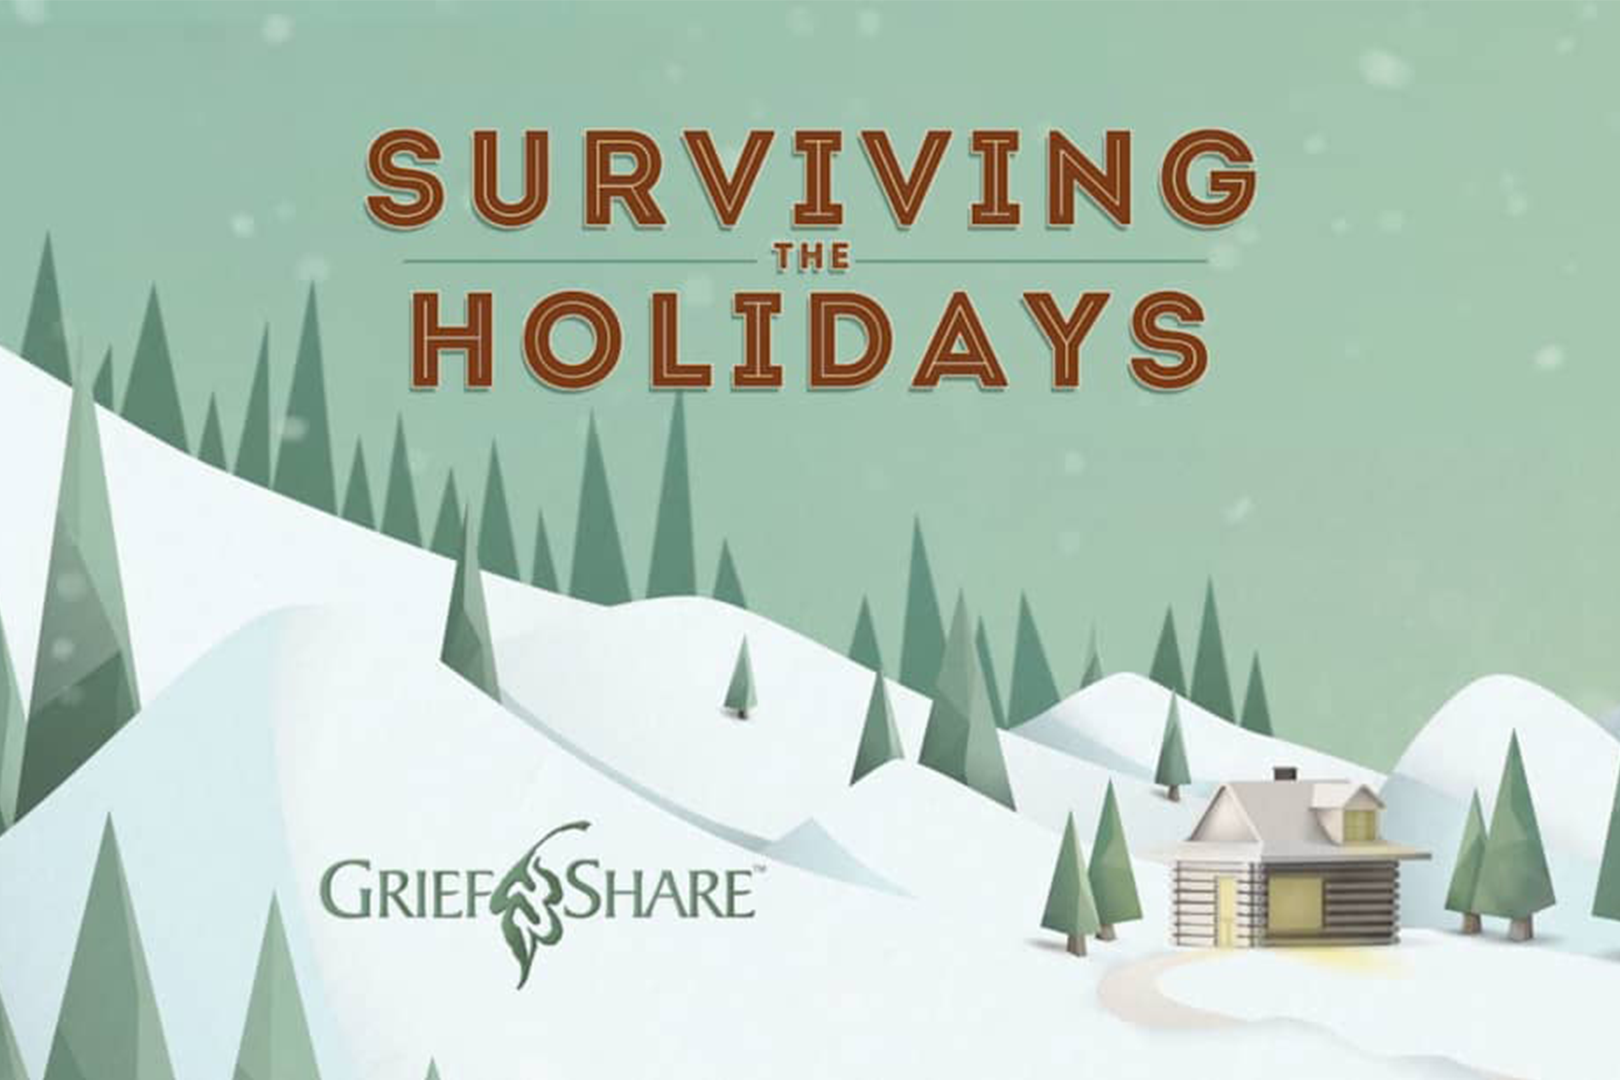 Griefshare - Surviving the Holidays.png